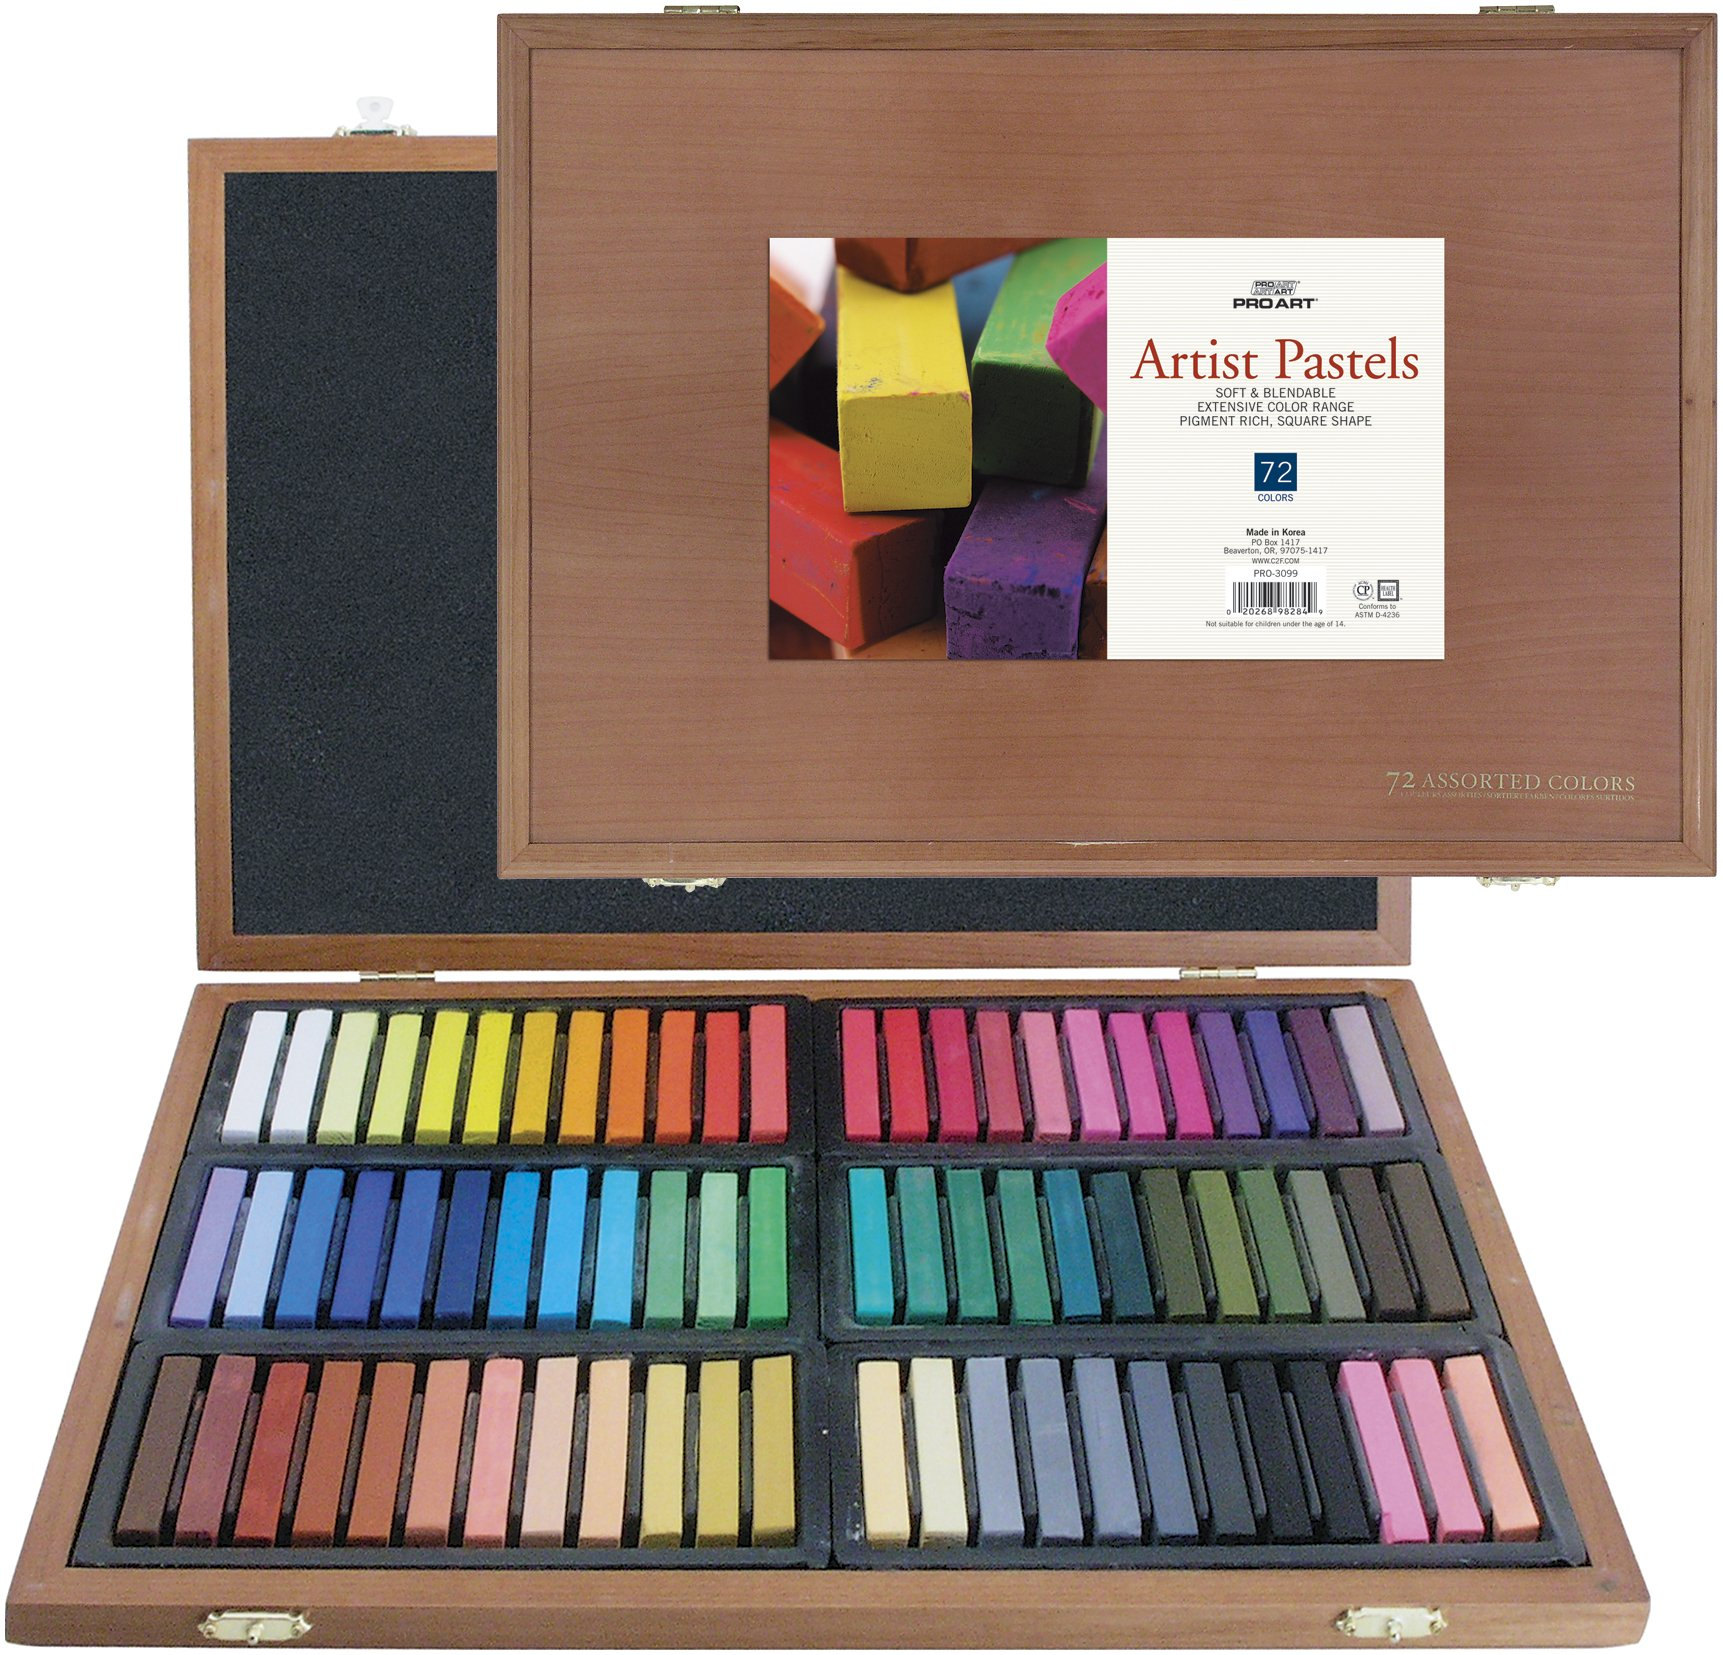 PRO ART Square Artist Pastel Set, 72 Assorted Colors Wood Box by PRO ART